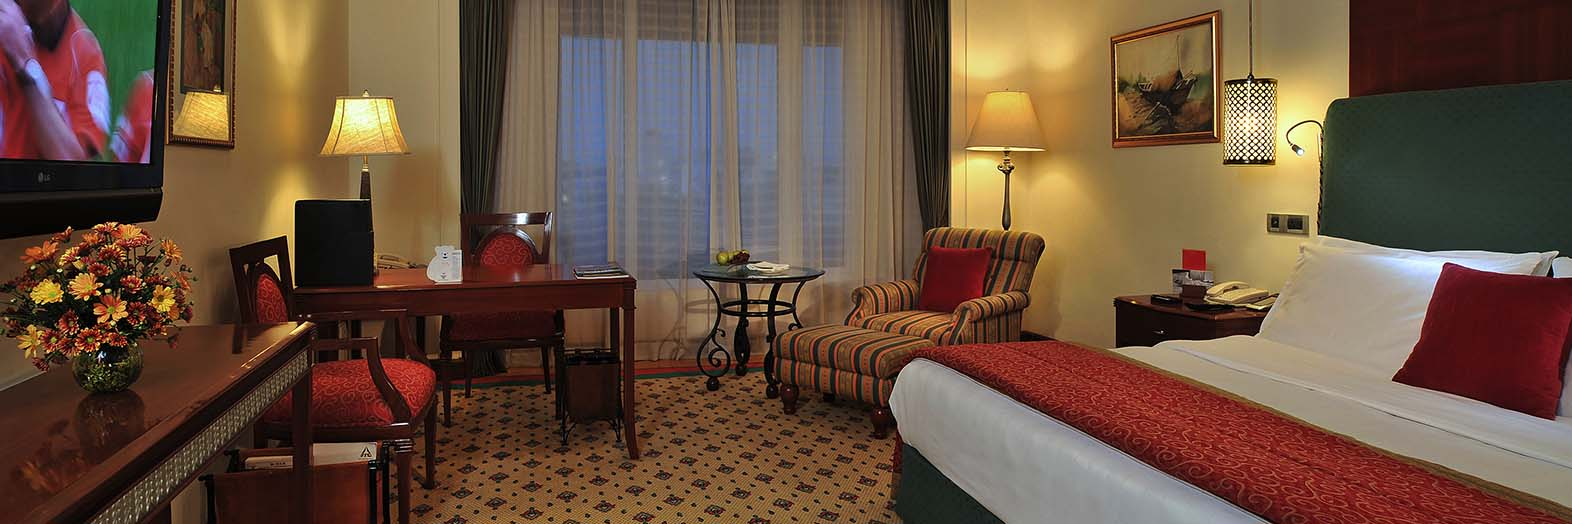 My Fortune – Hotels in Chennai Room